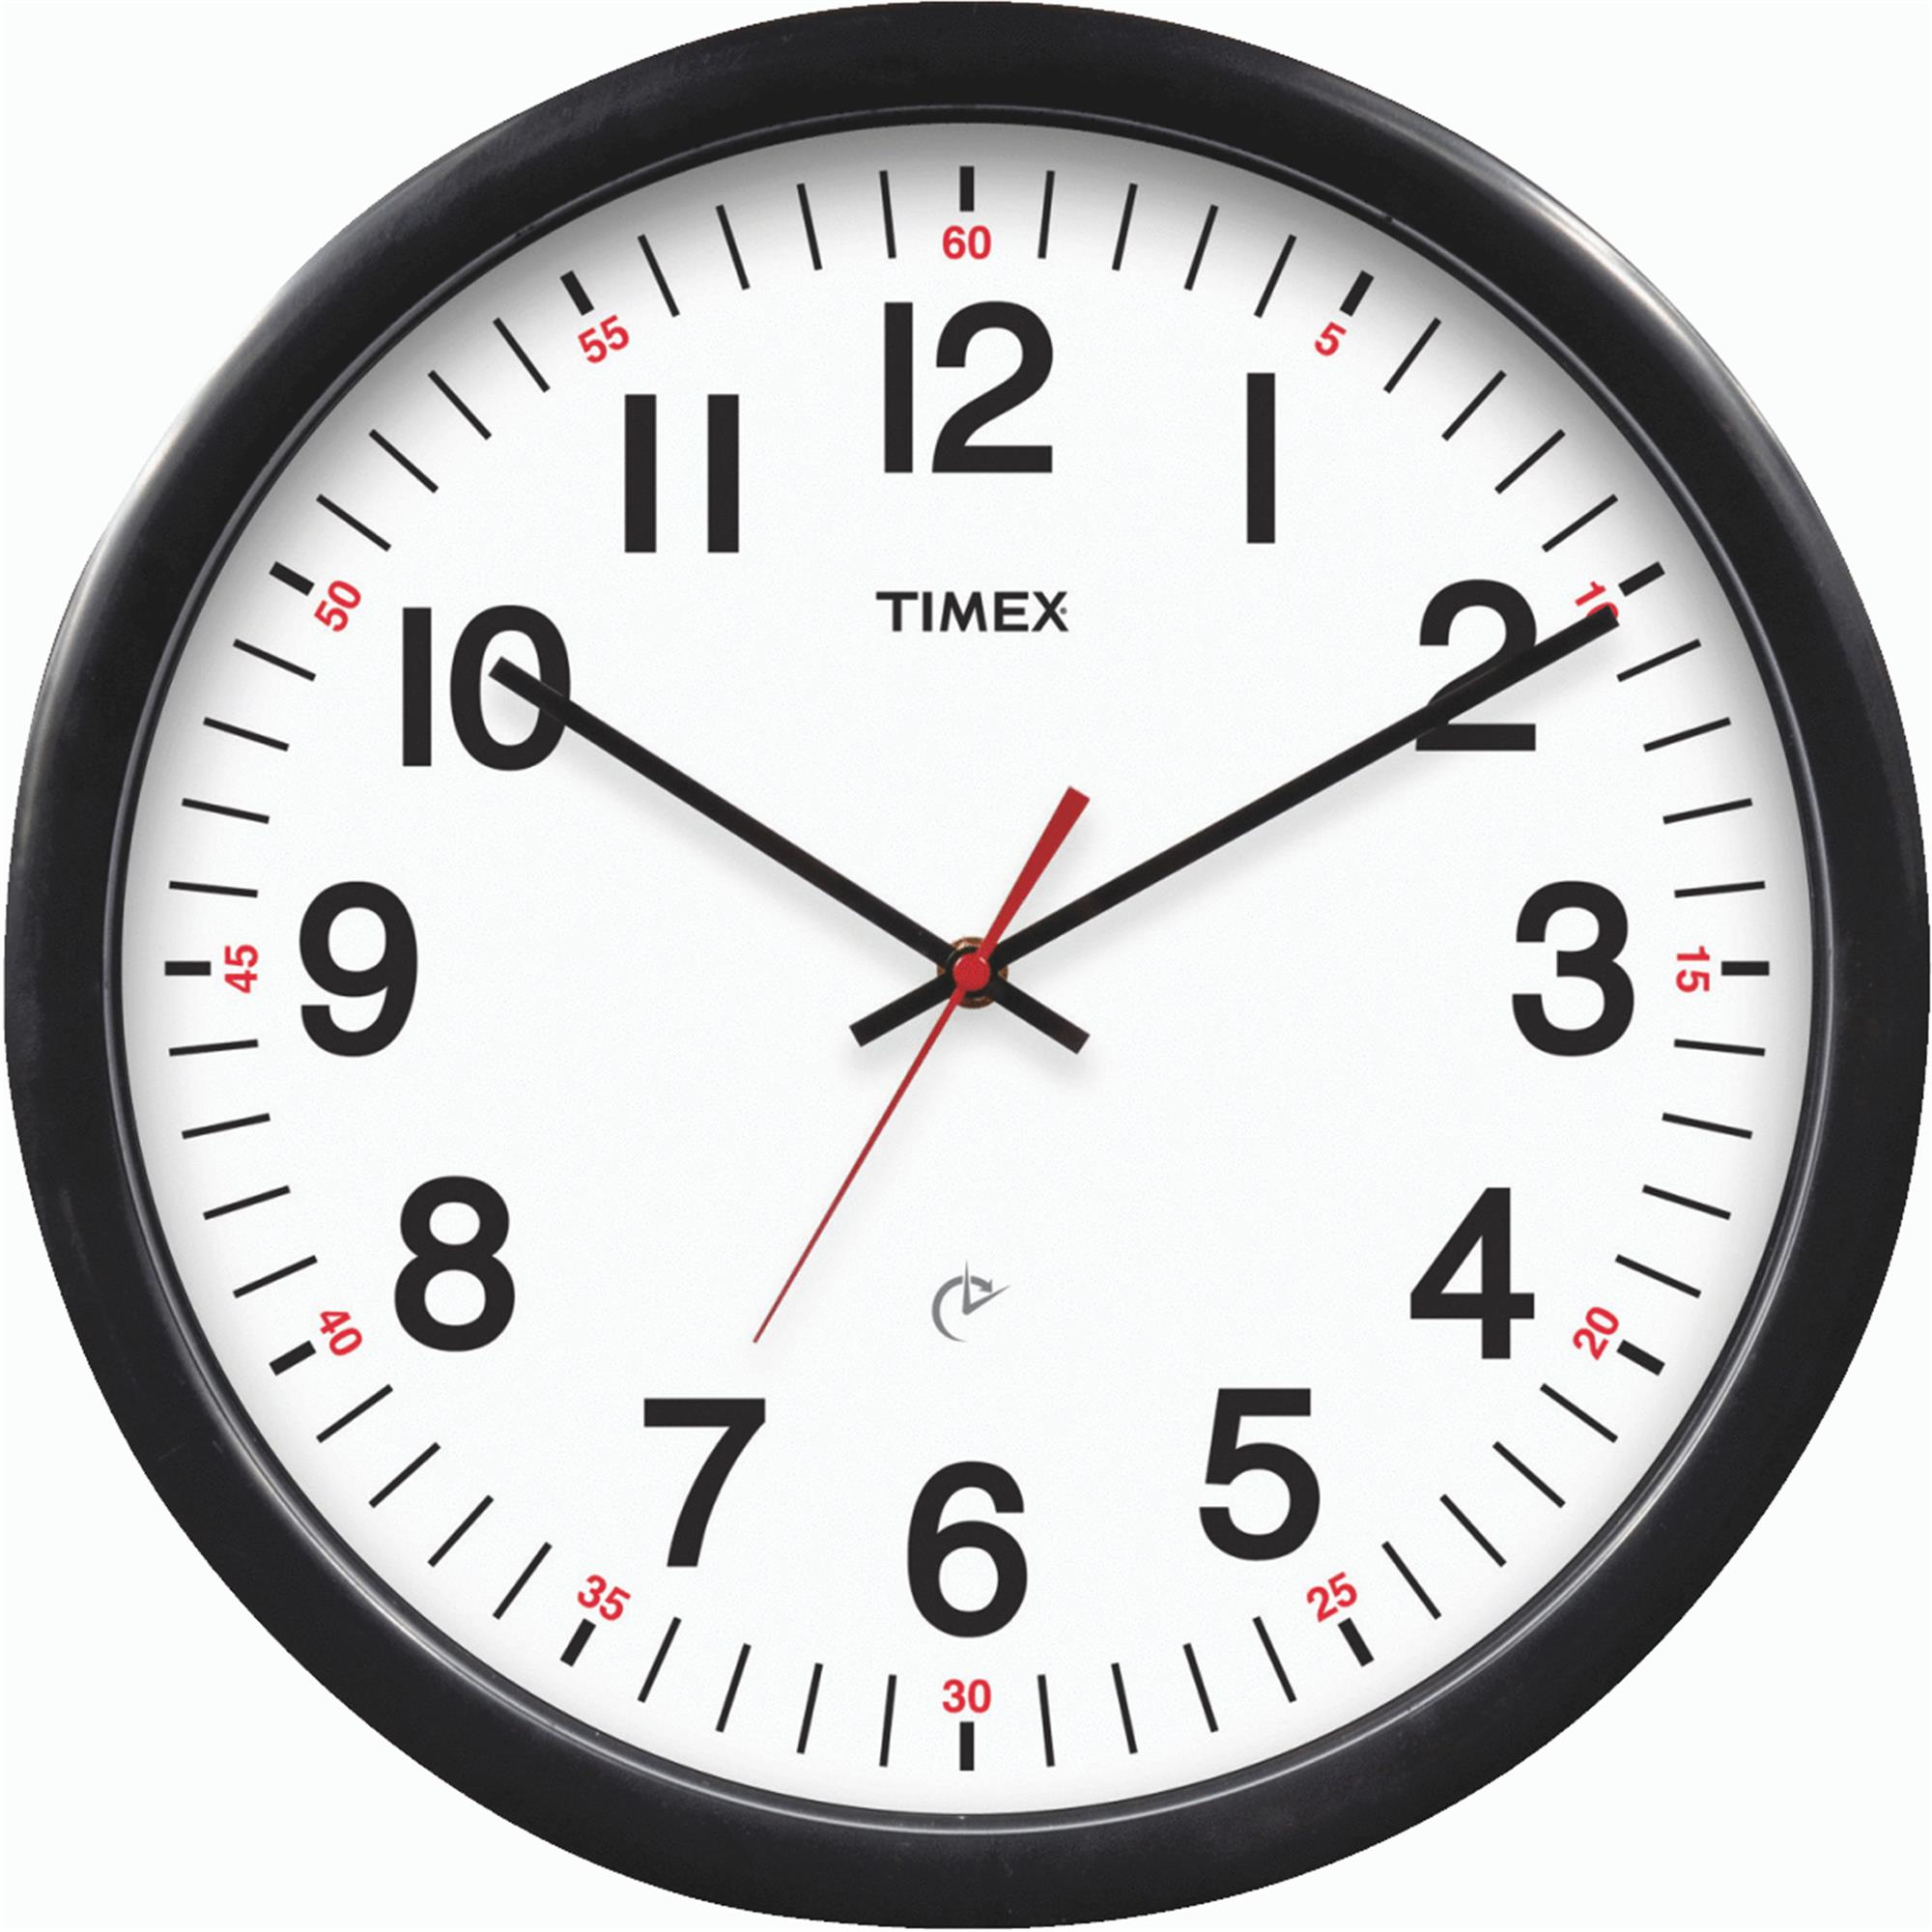 "timex 14-1/2"" set & forget timex office wall clock - walmart"